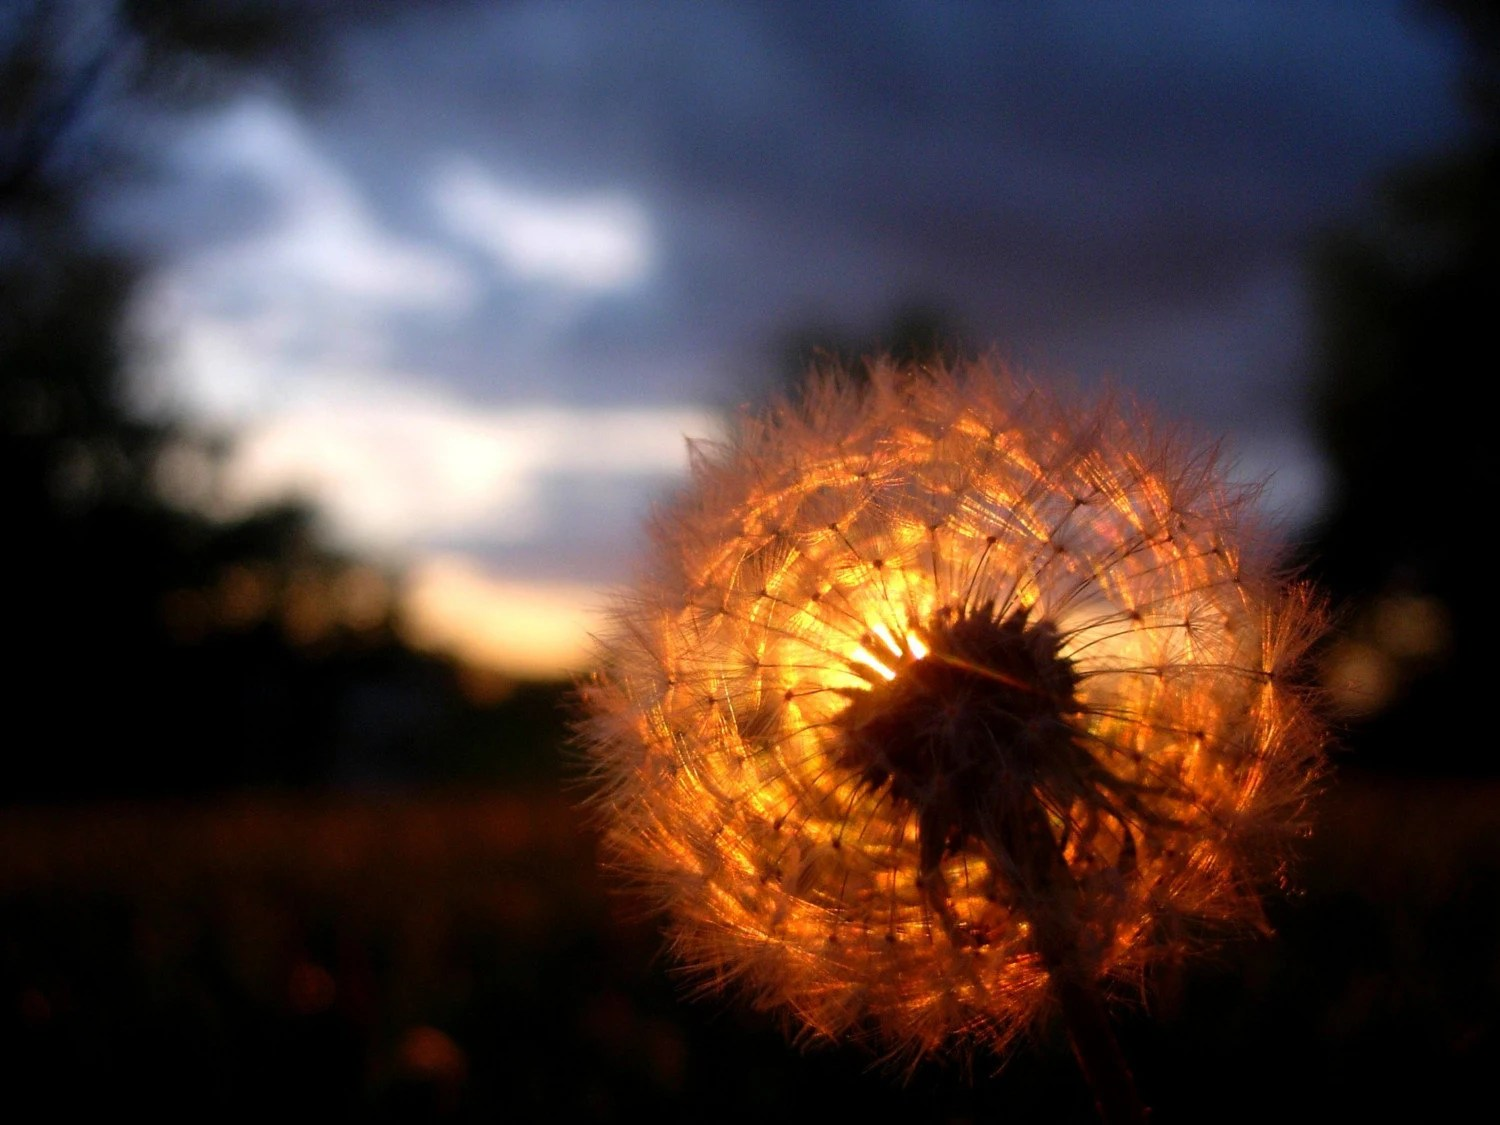 Sunset/Dandelion